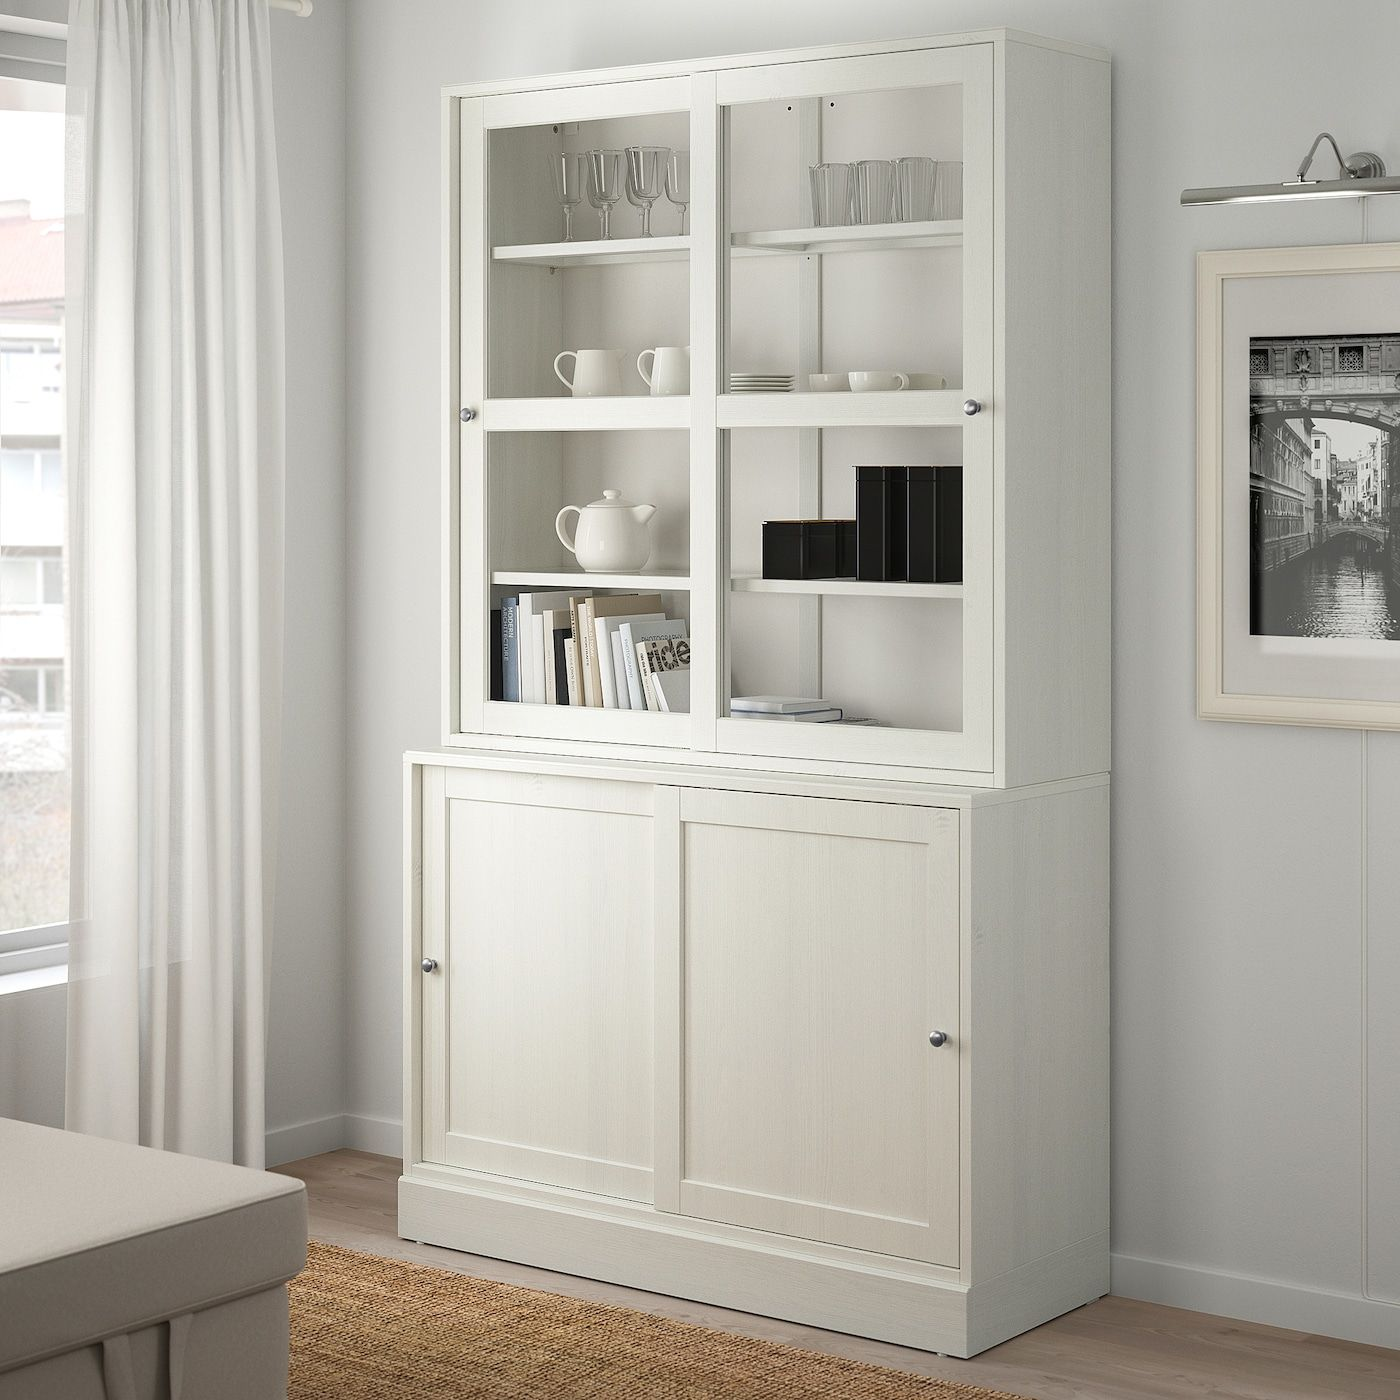 Havsta Storage With Sliding Glass Doors White 47 5 8x18 1 2x83 1